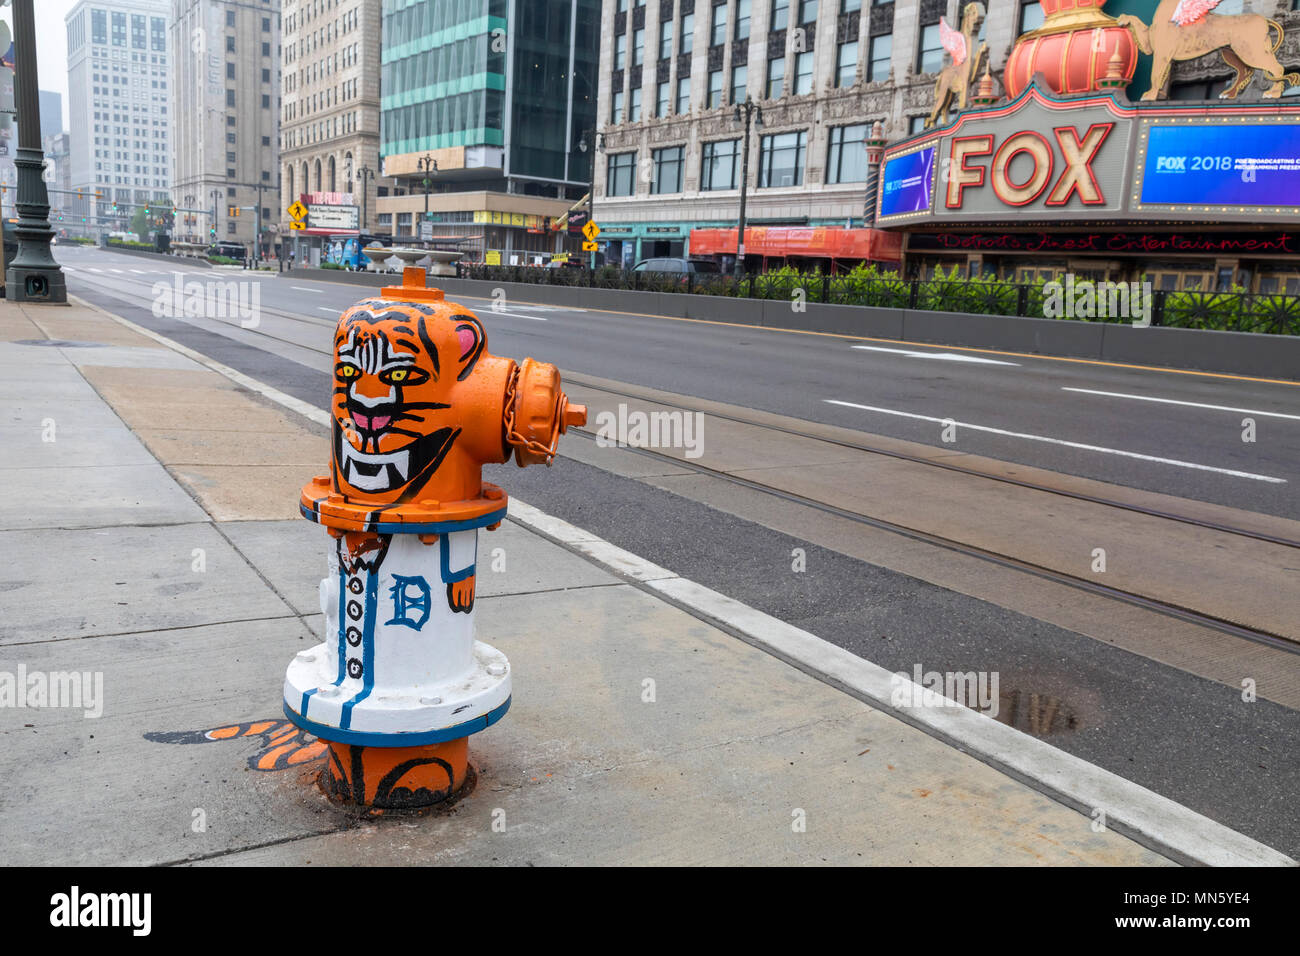 Detroit, Michigan - A fire hydrant painted in Detroit Tigers colors, near Comerica Park, home of the Detroit Tigers major league baseball team. - Stock Image